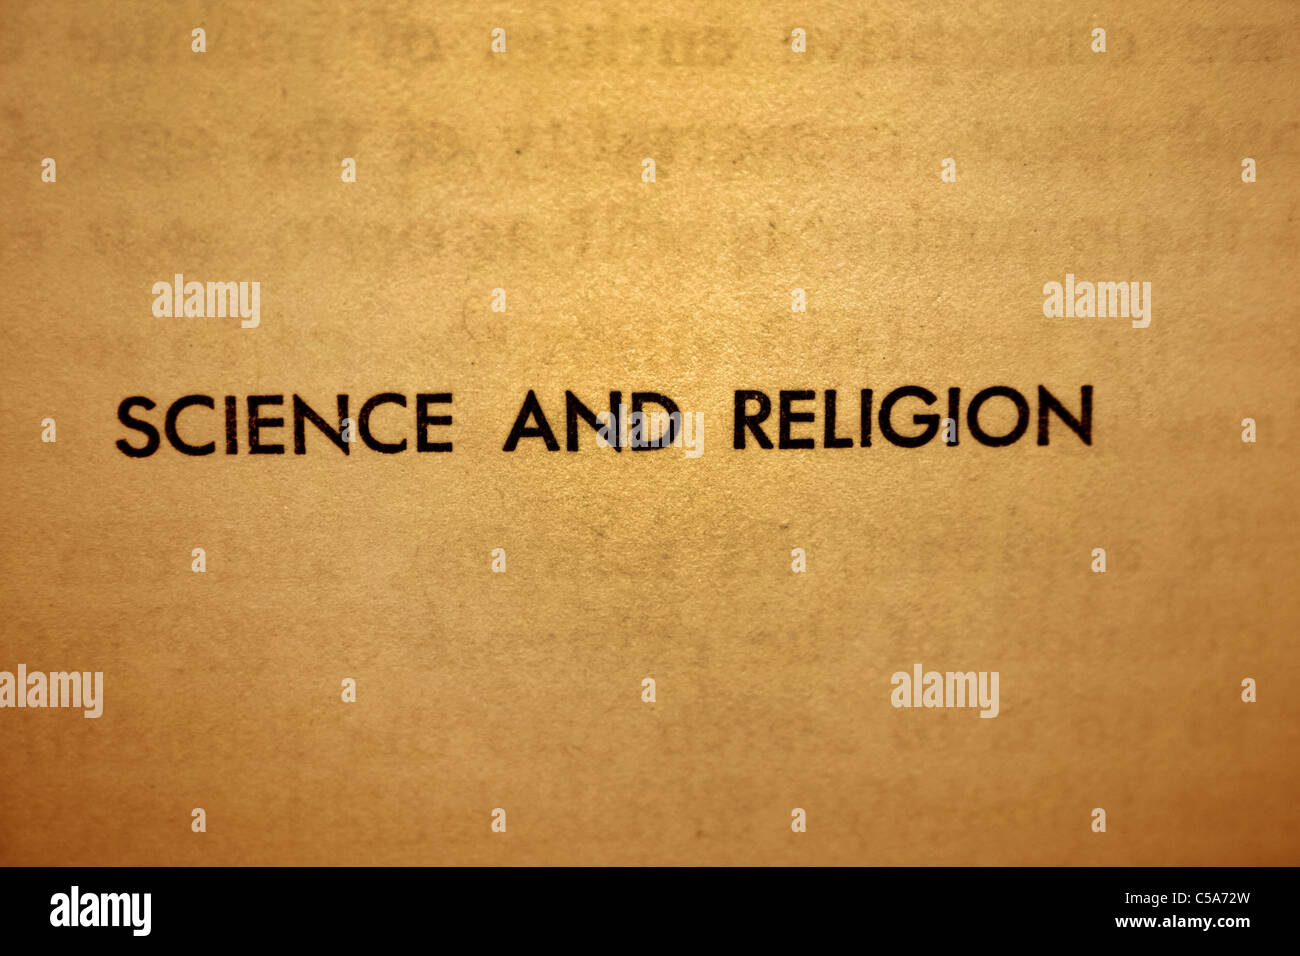 Science and religion - Stock Image